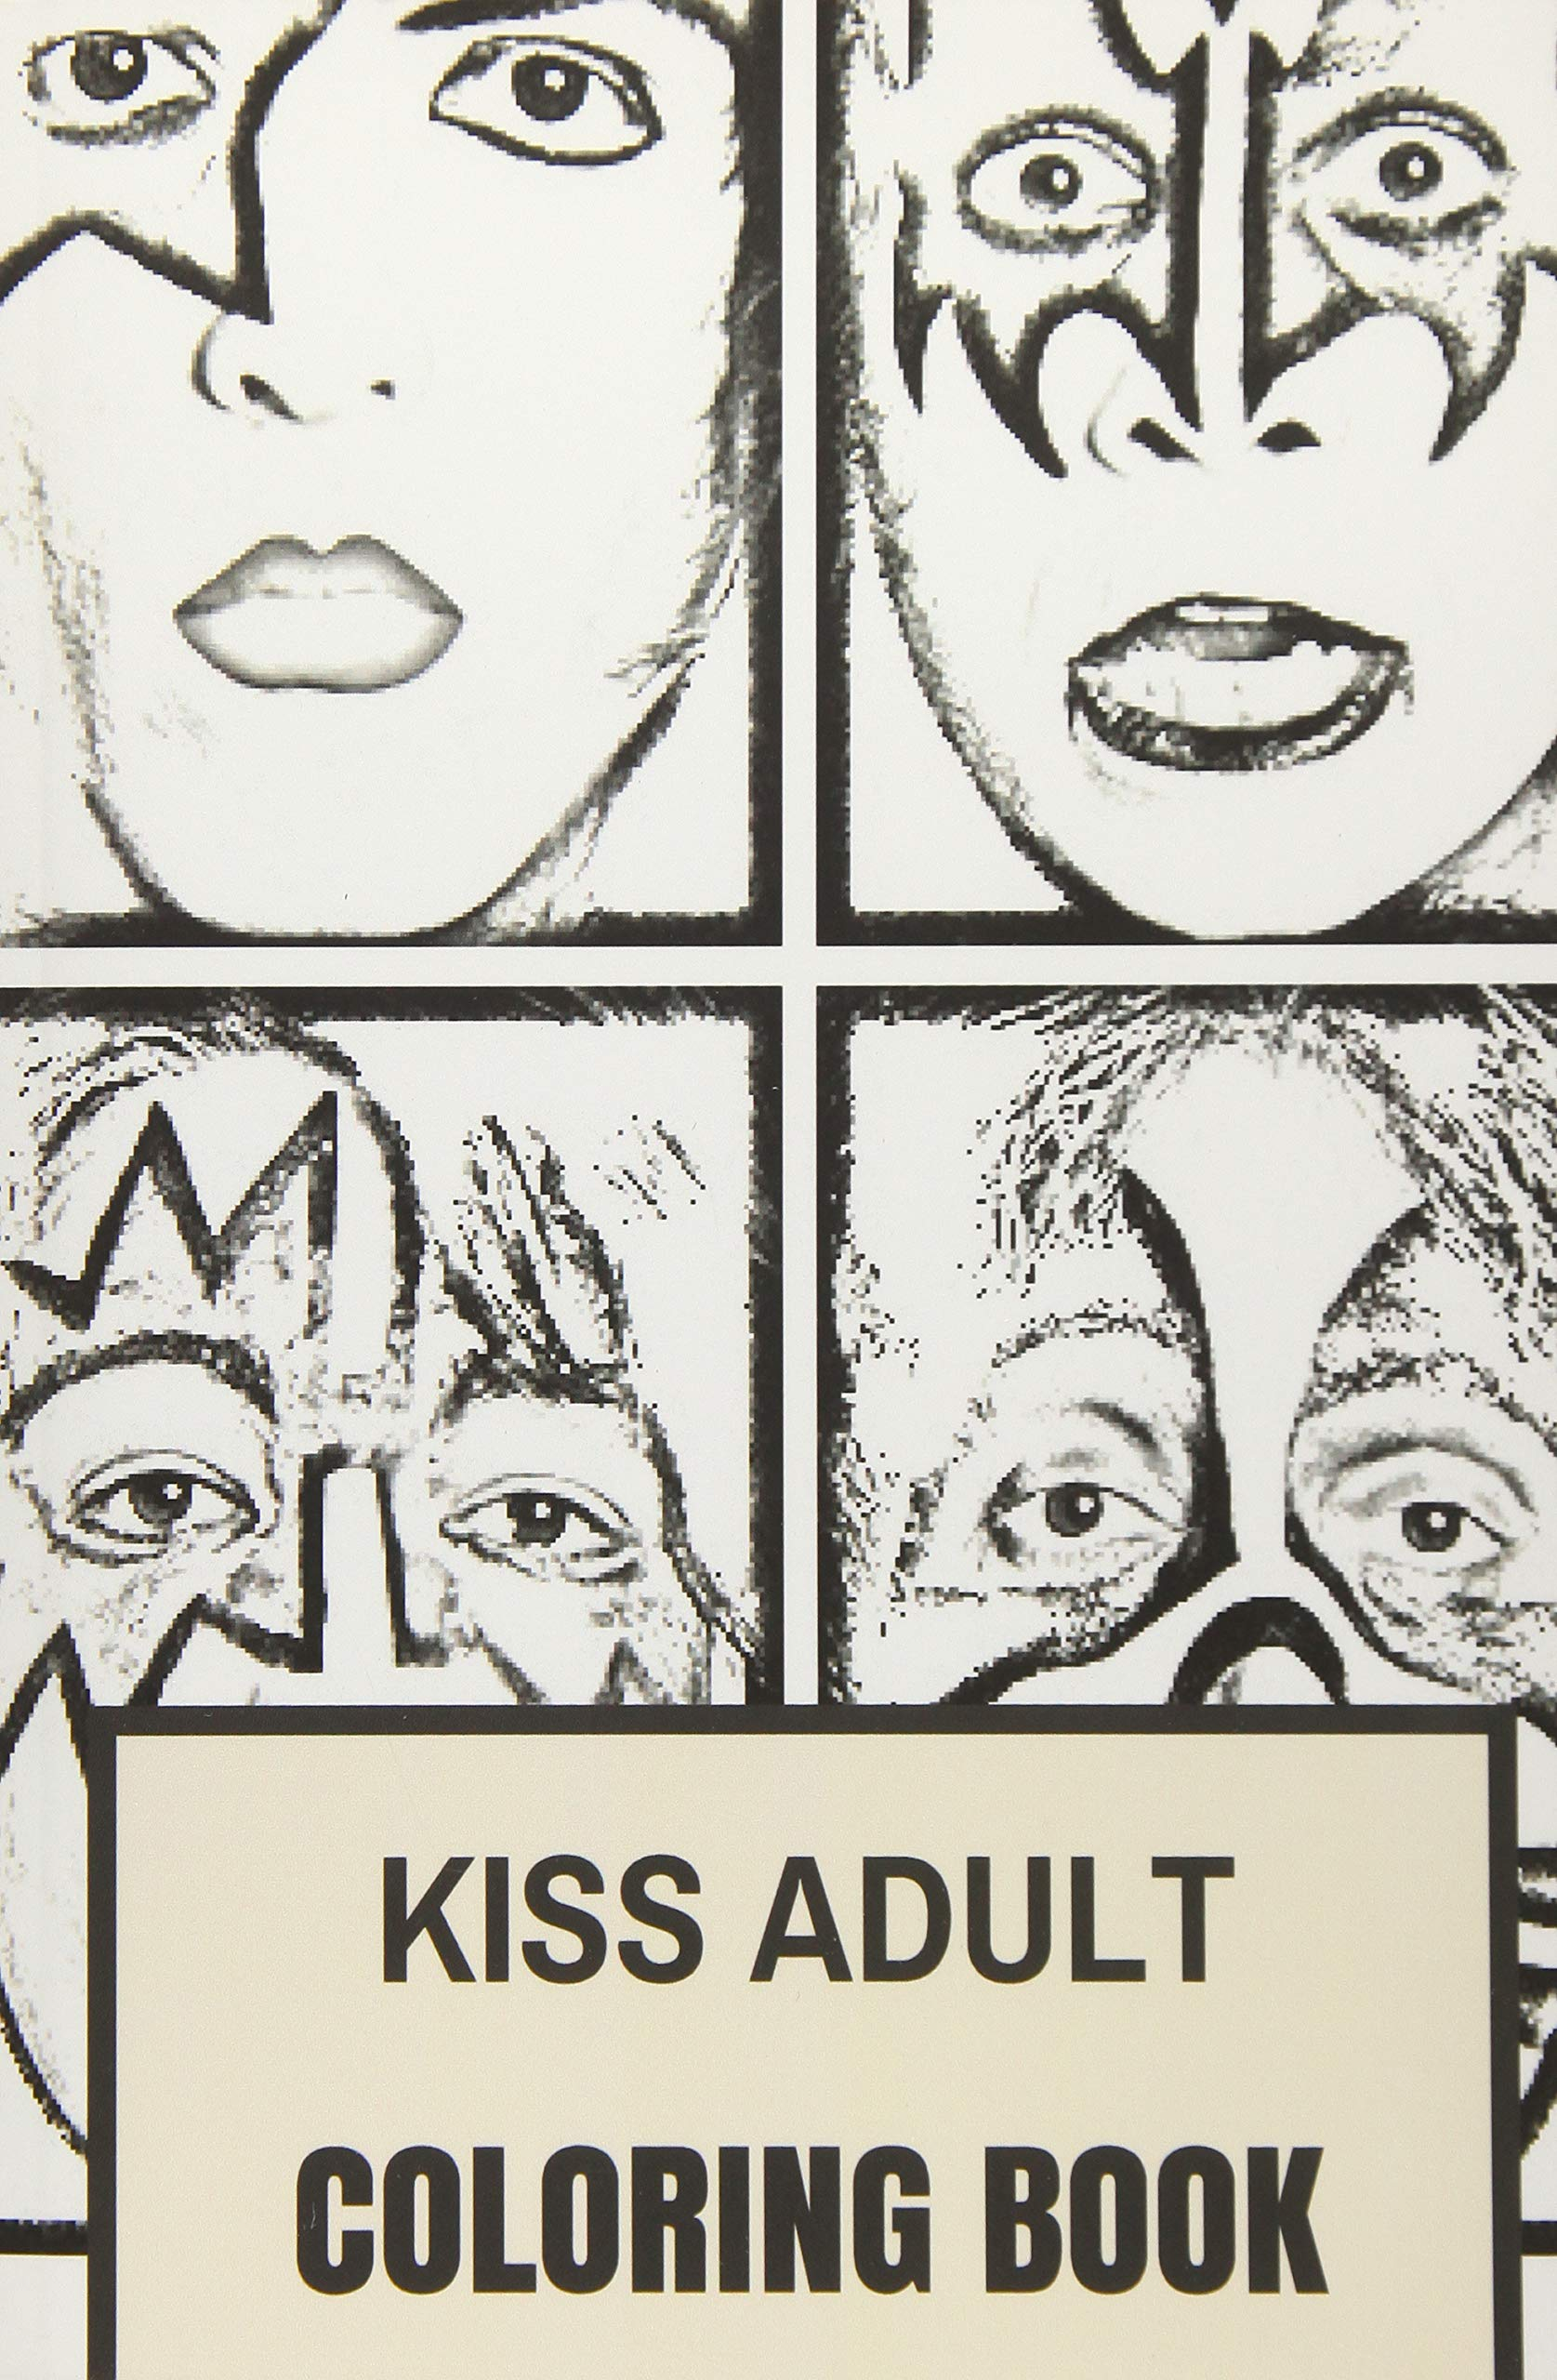 Amazon.com: Kiss Adult Coloring Book: Gene Simmons and Paul Stanley ...